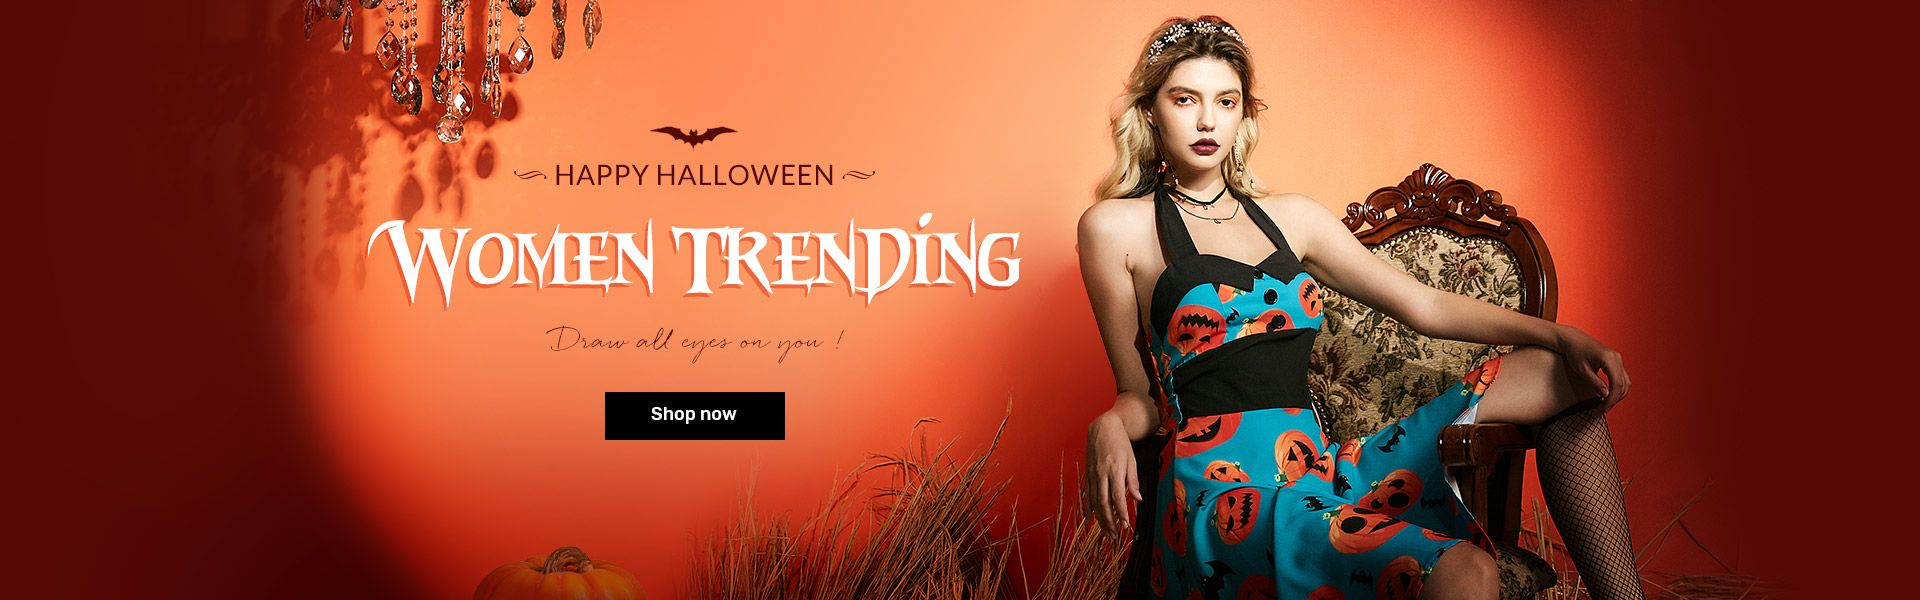 rosegal.com - Get Buy 2 Get 1 30% Off on Women's Halloween Clothing